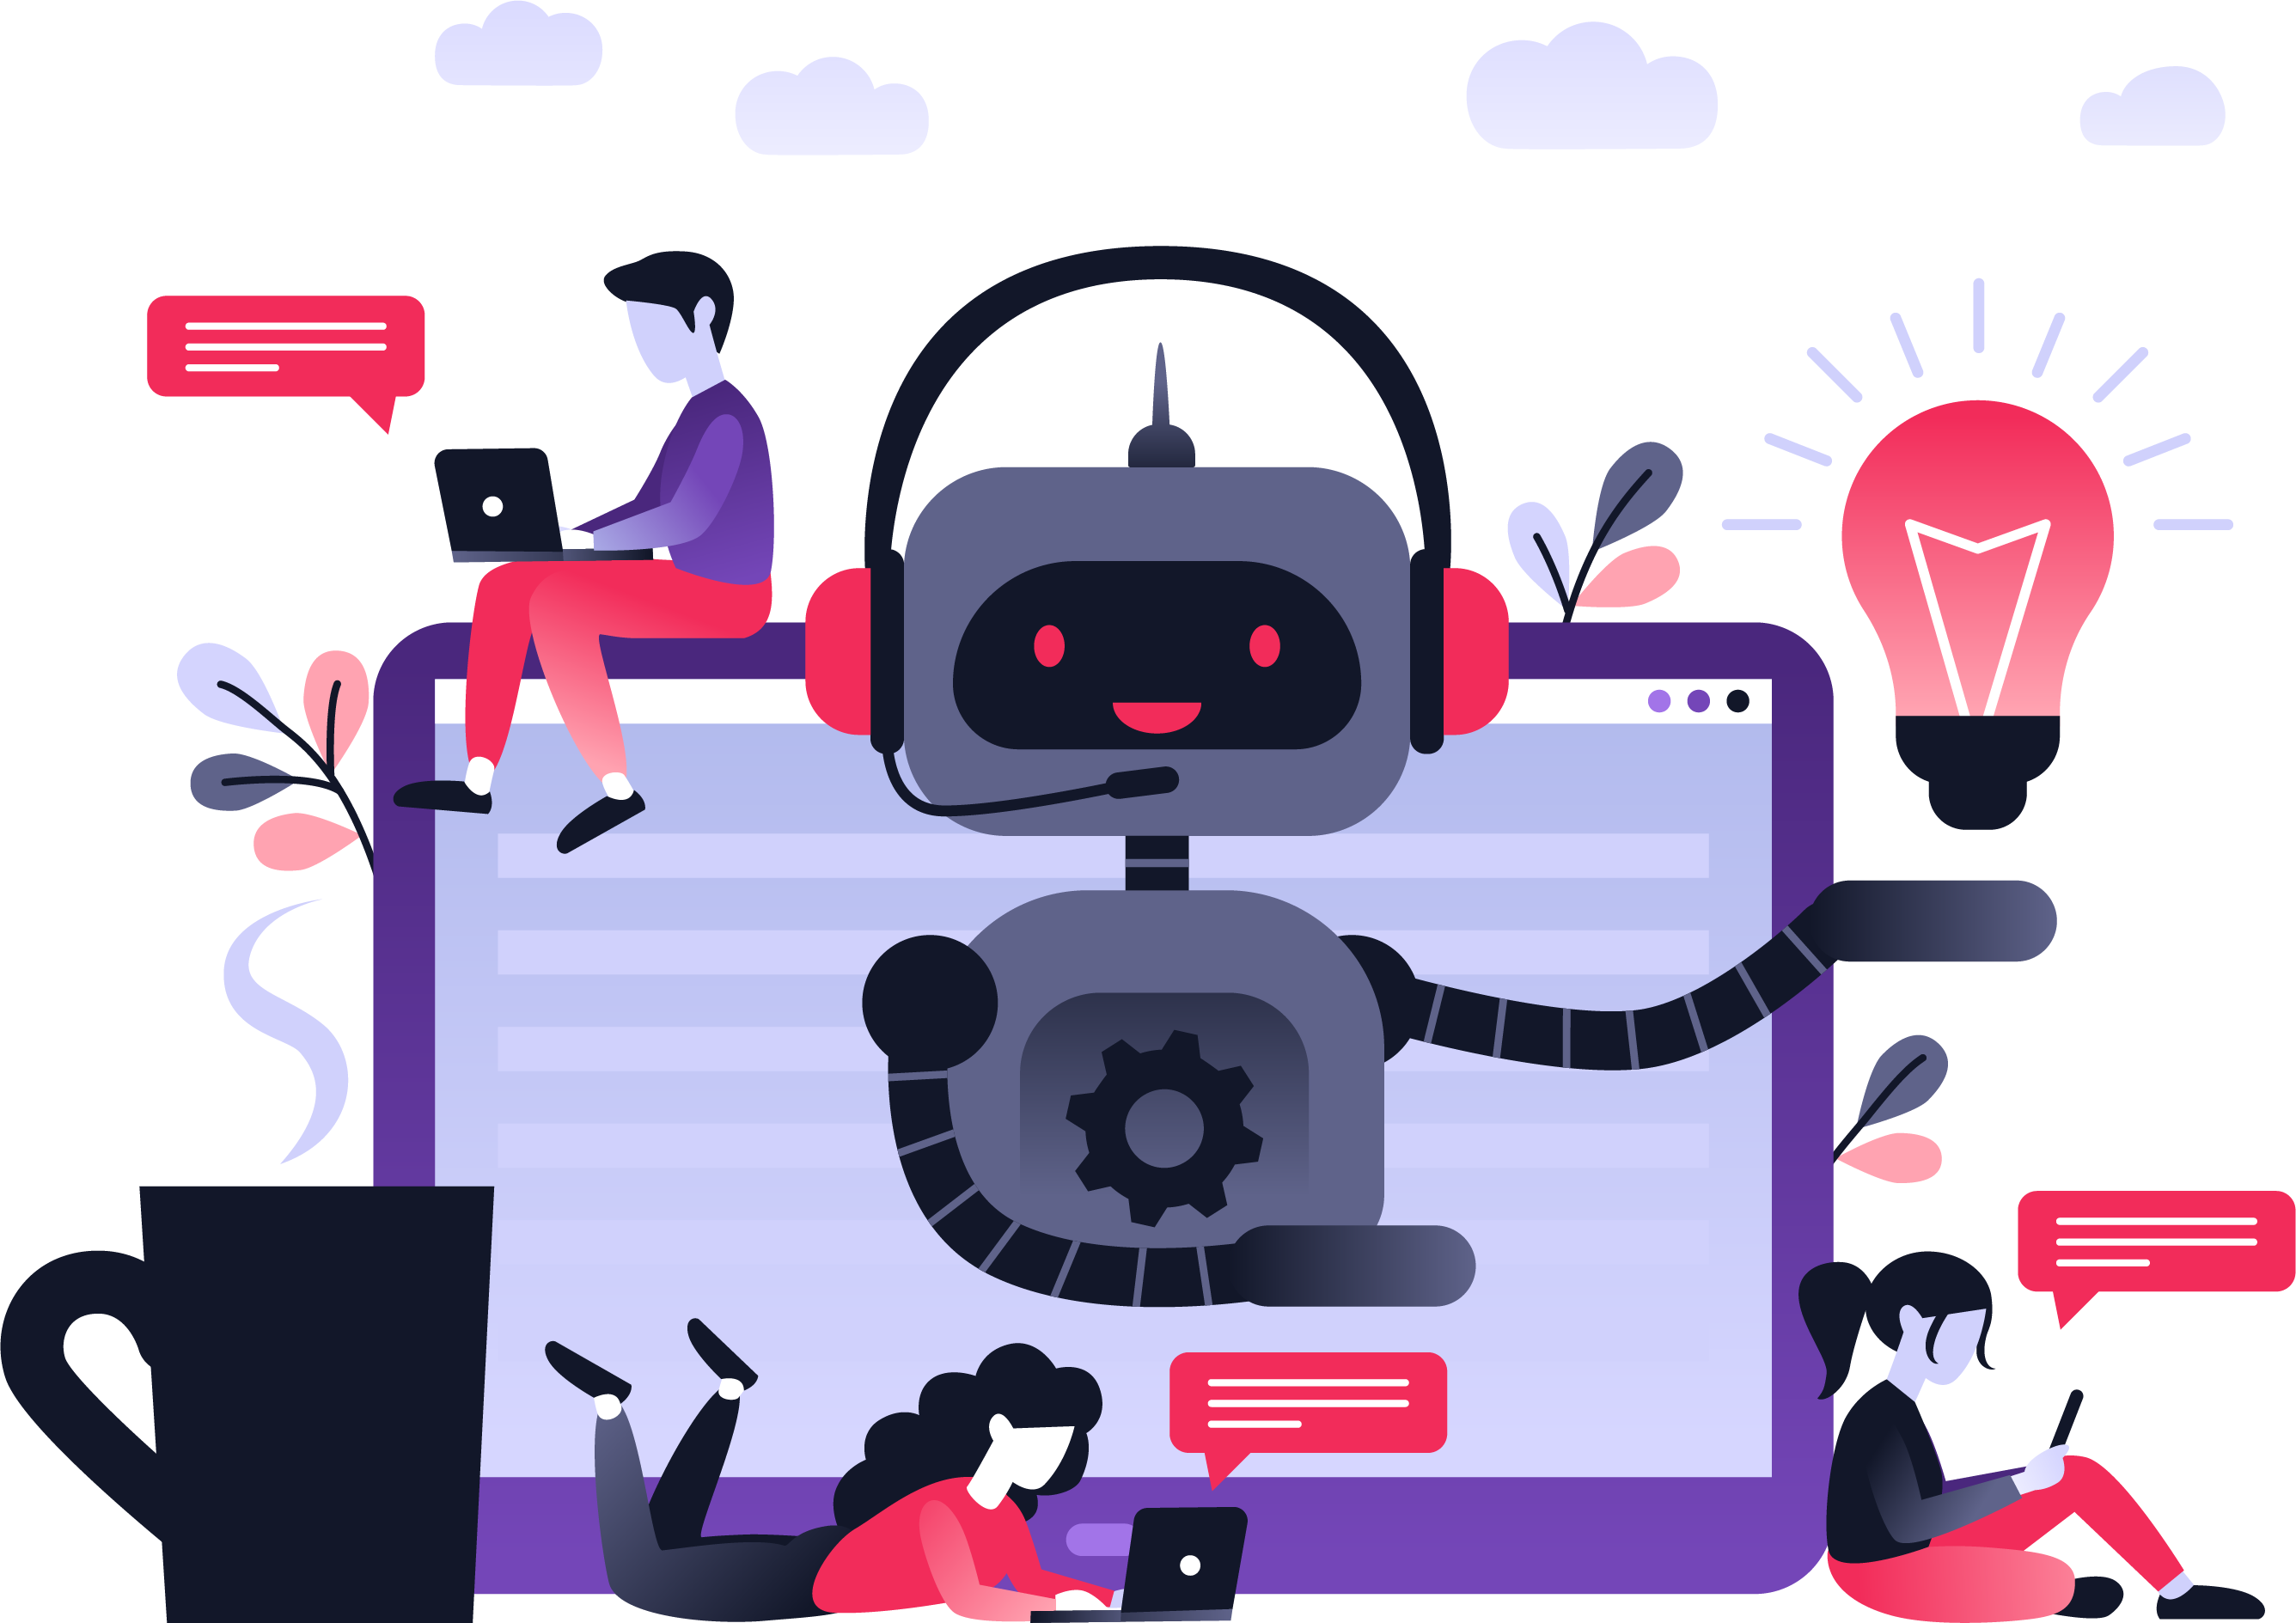 Chatbotbusinessconcept